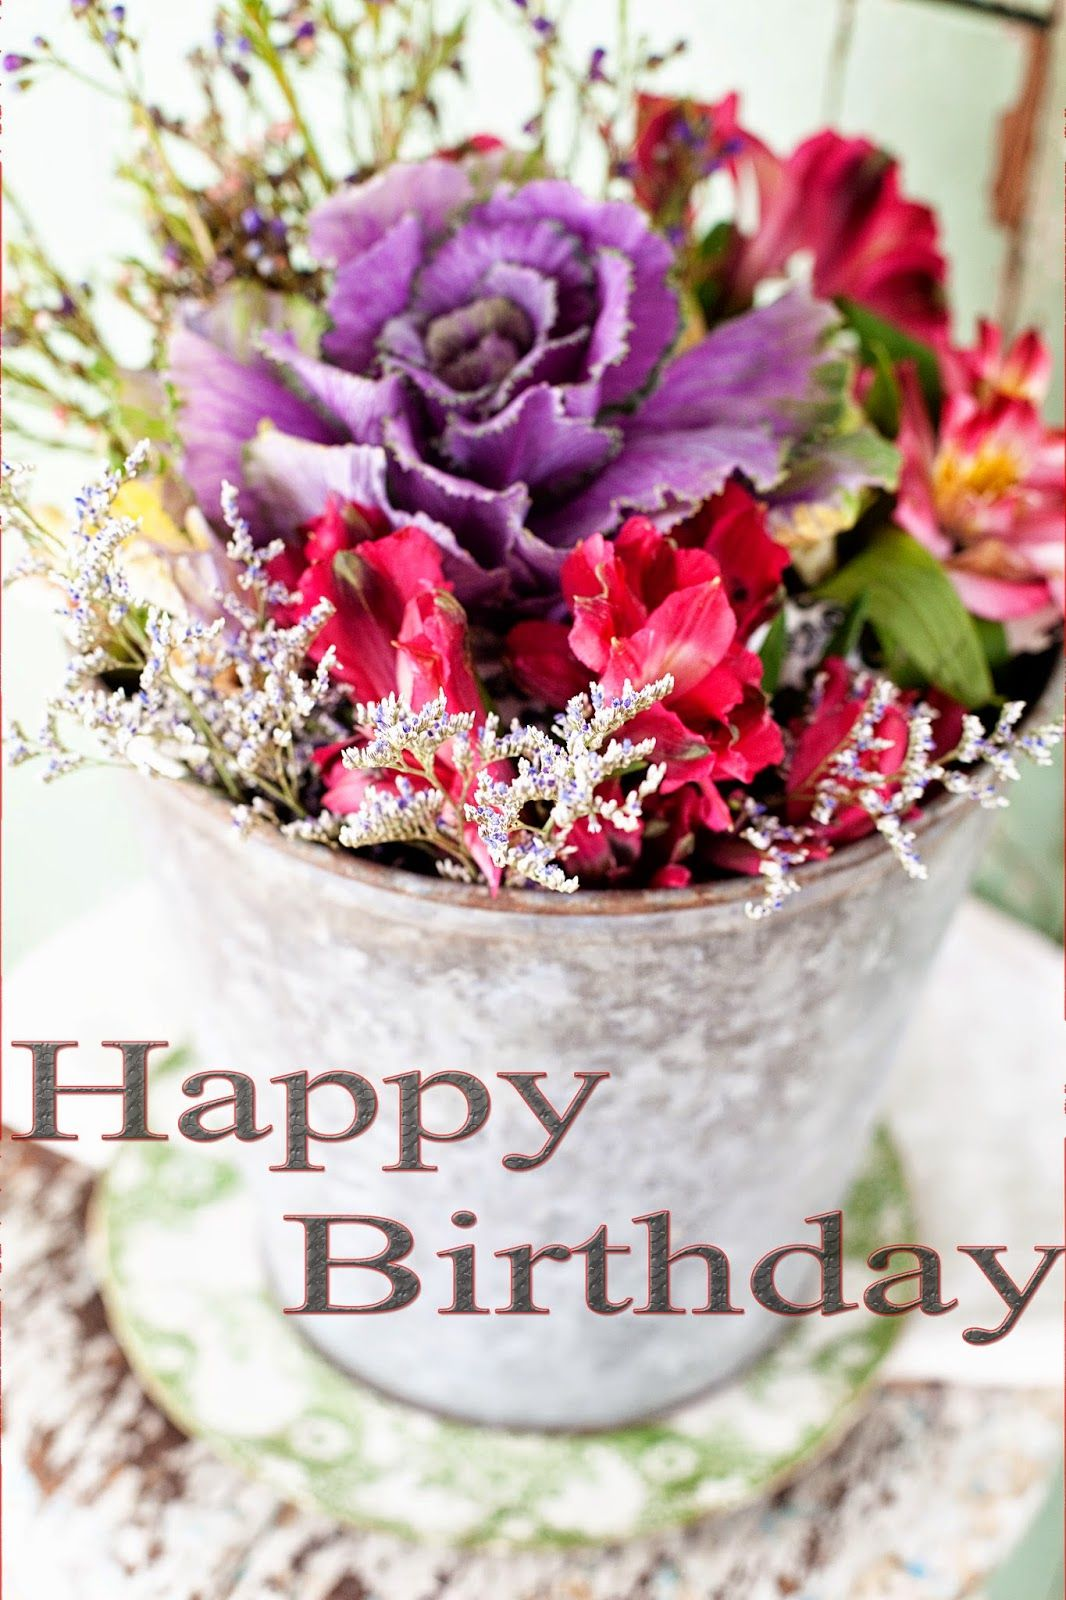 Happy birthday flowers images birthday sentiment pinterest happy birthday cake and flowers images to wishes some one happy birthday cake is one of the major part beside happy birthday cake you als dhlflorist Images